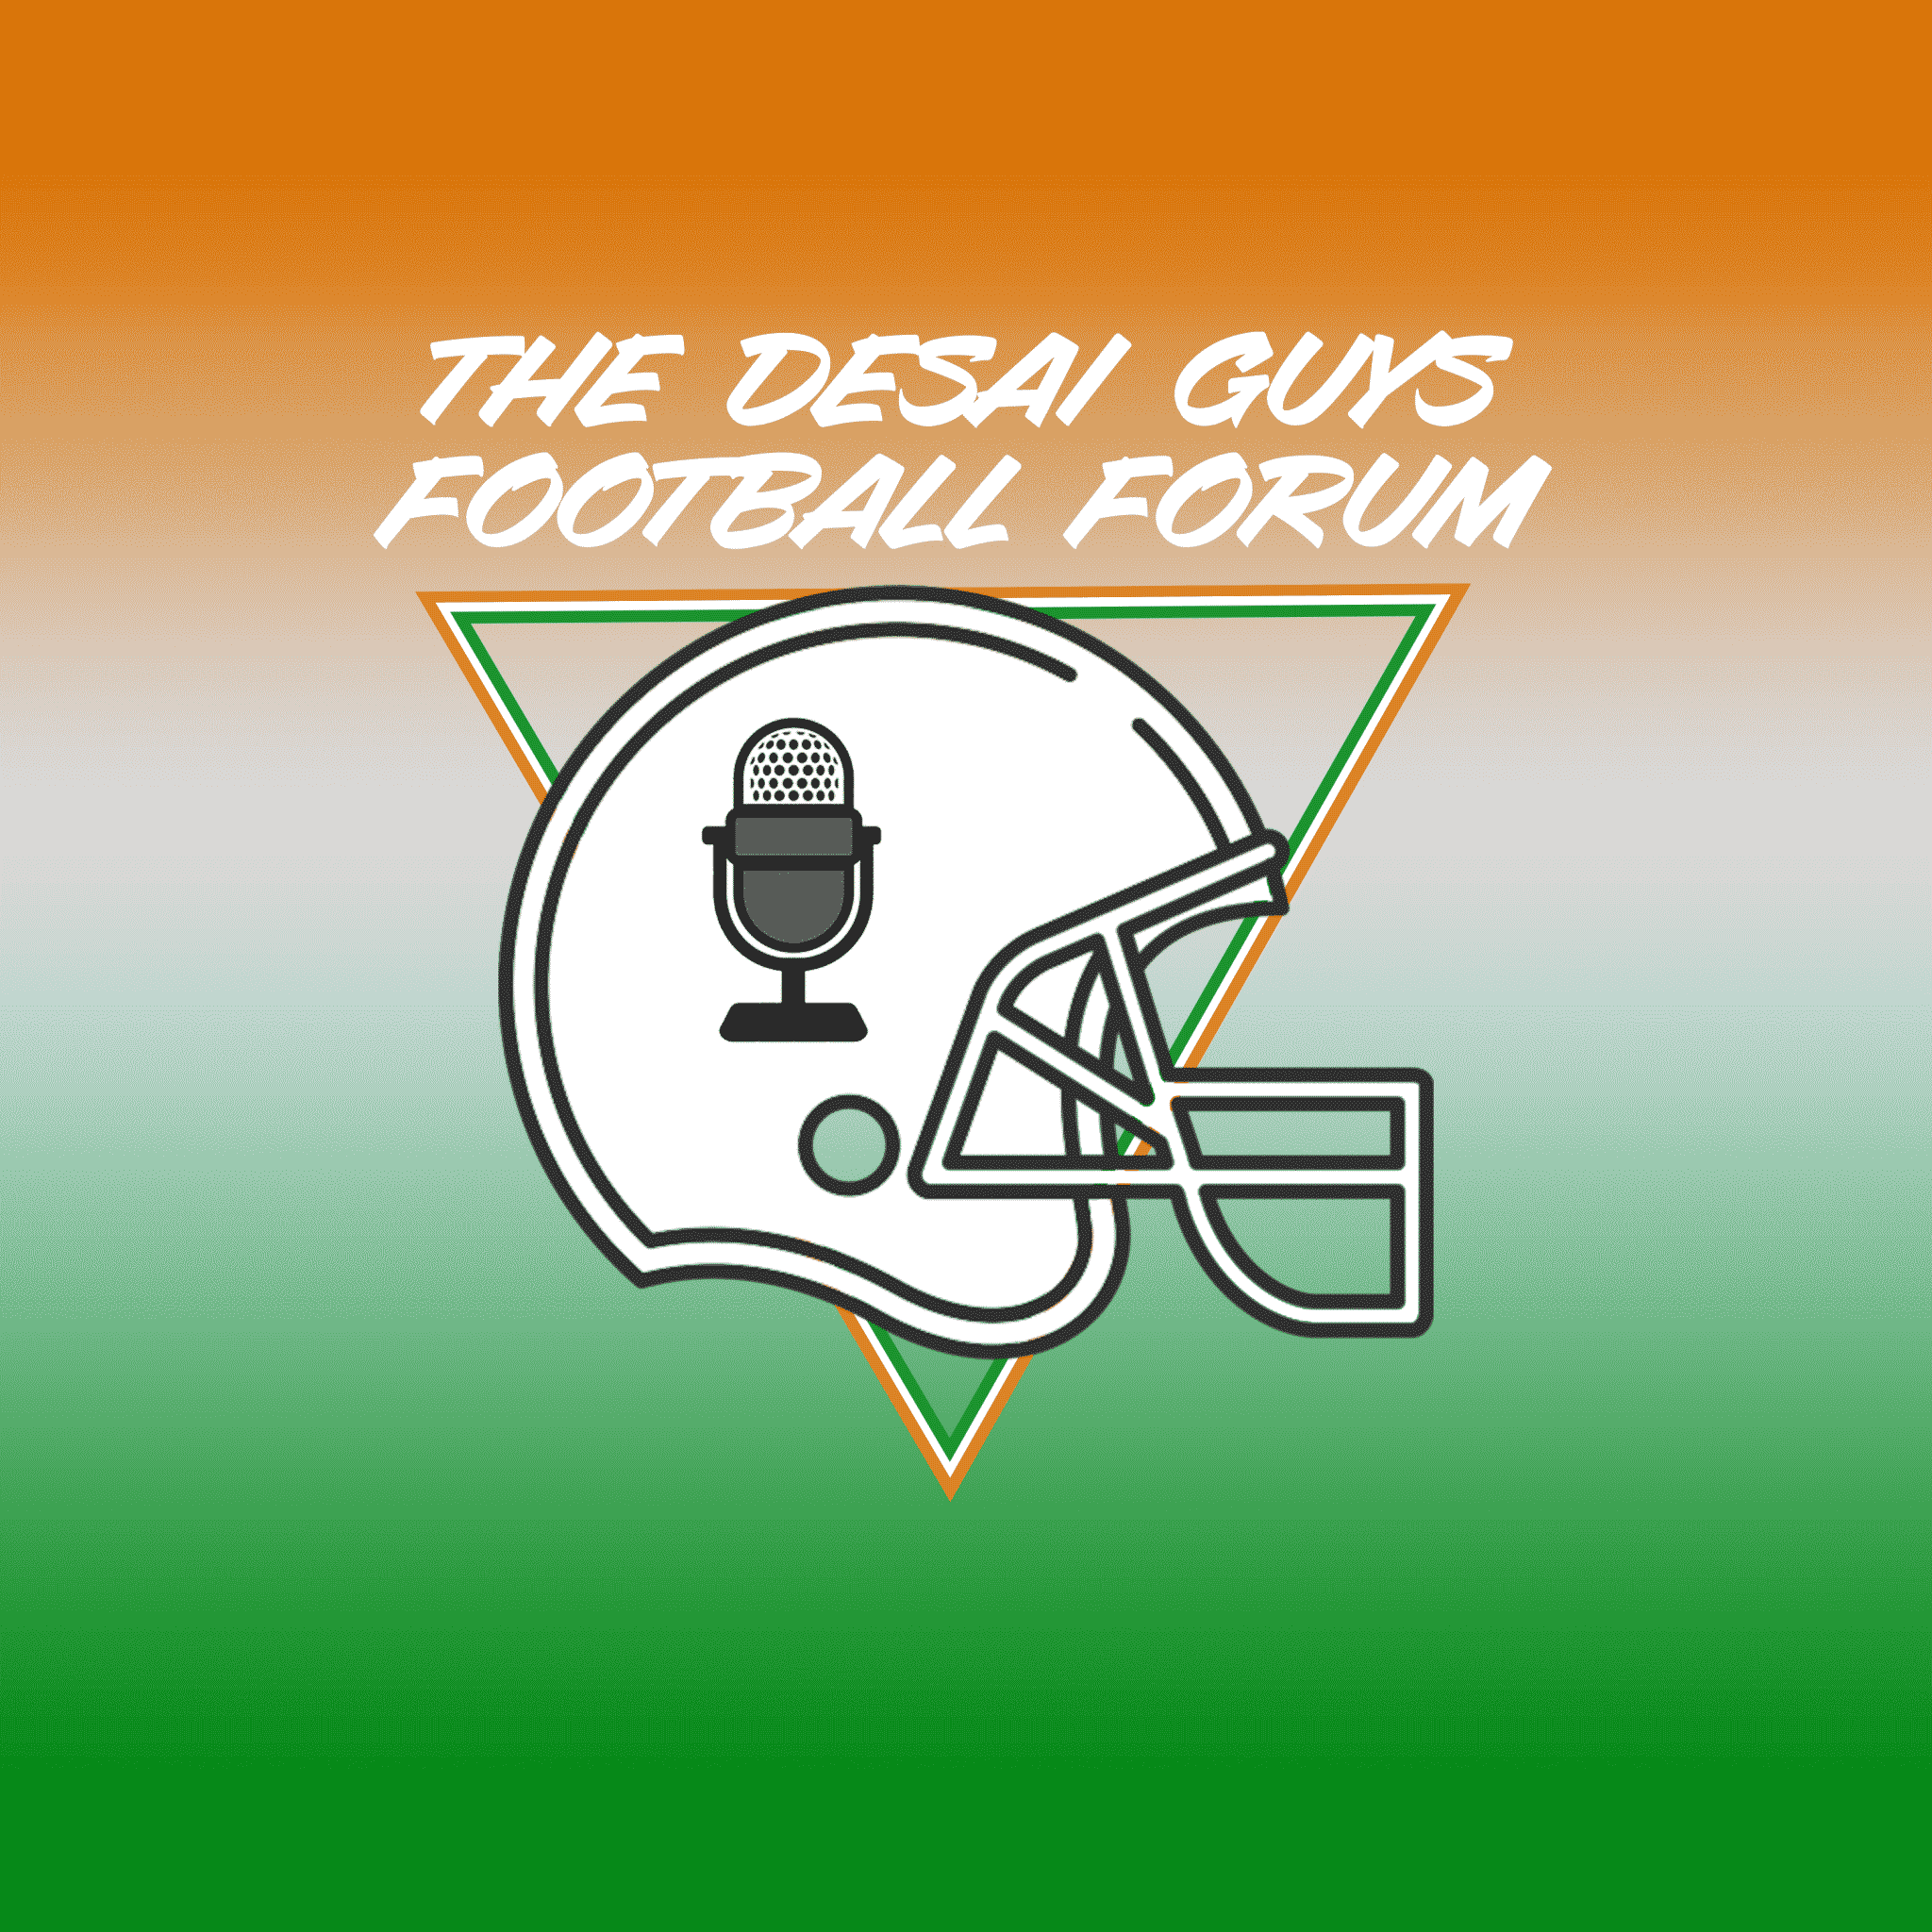 Episode 32 – Drew Brees' Injury and NFL Draft 2021 Preview